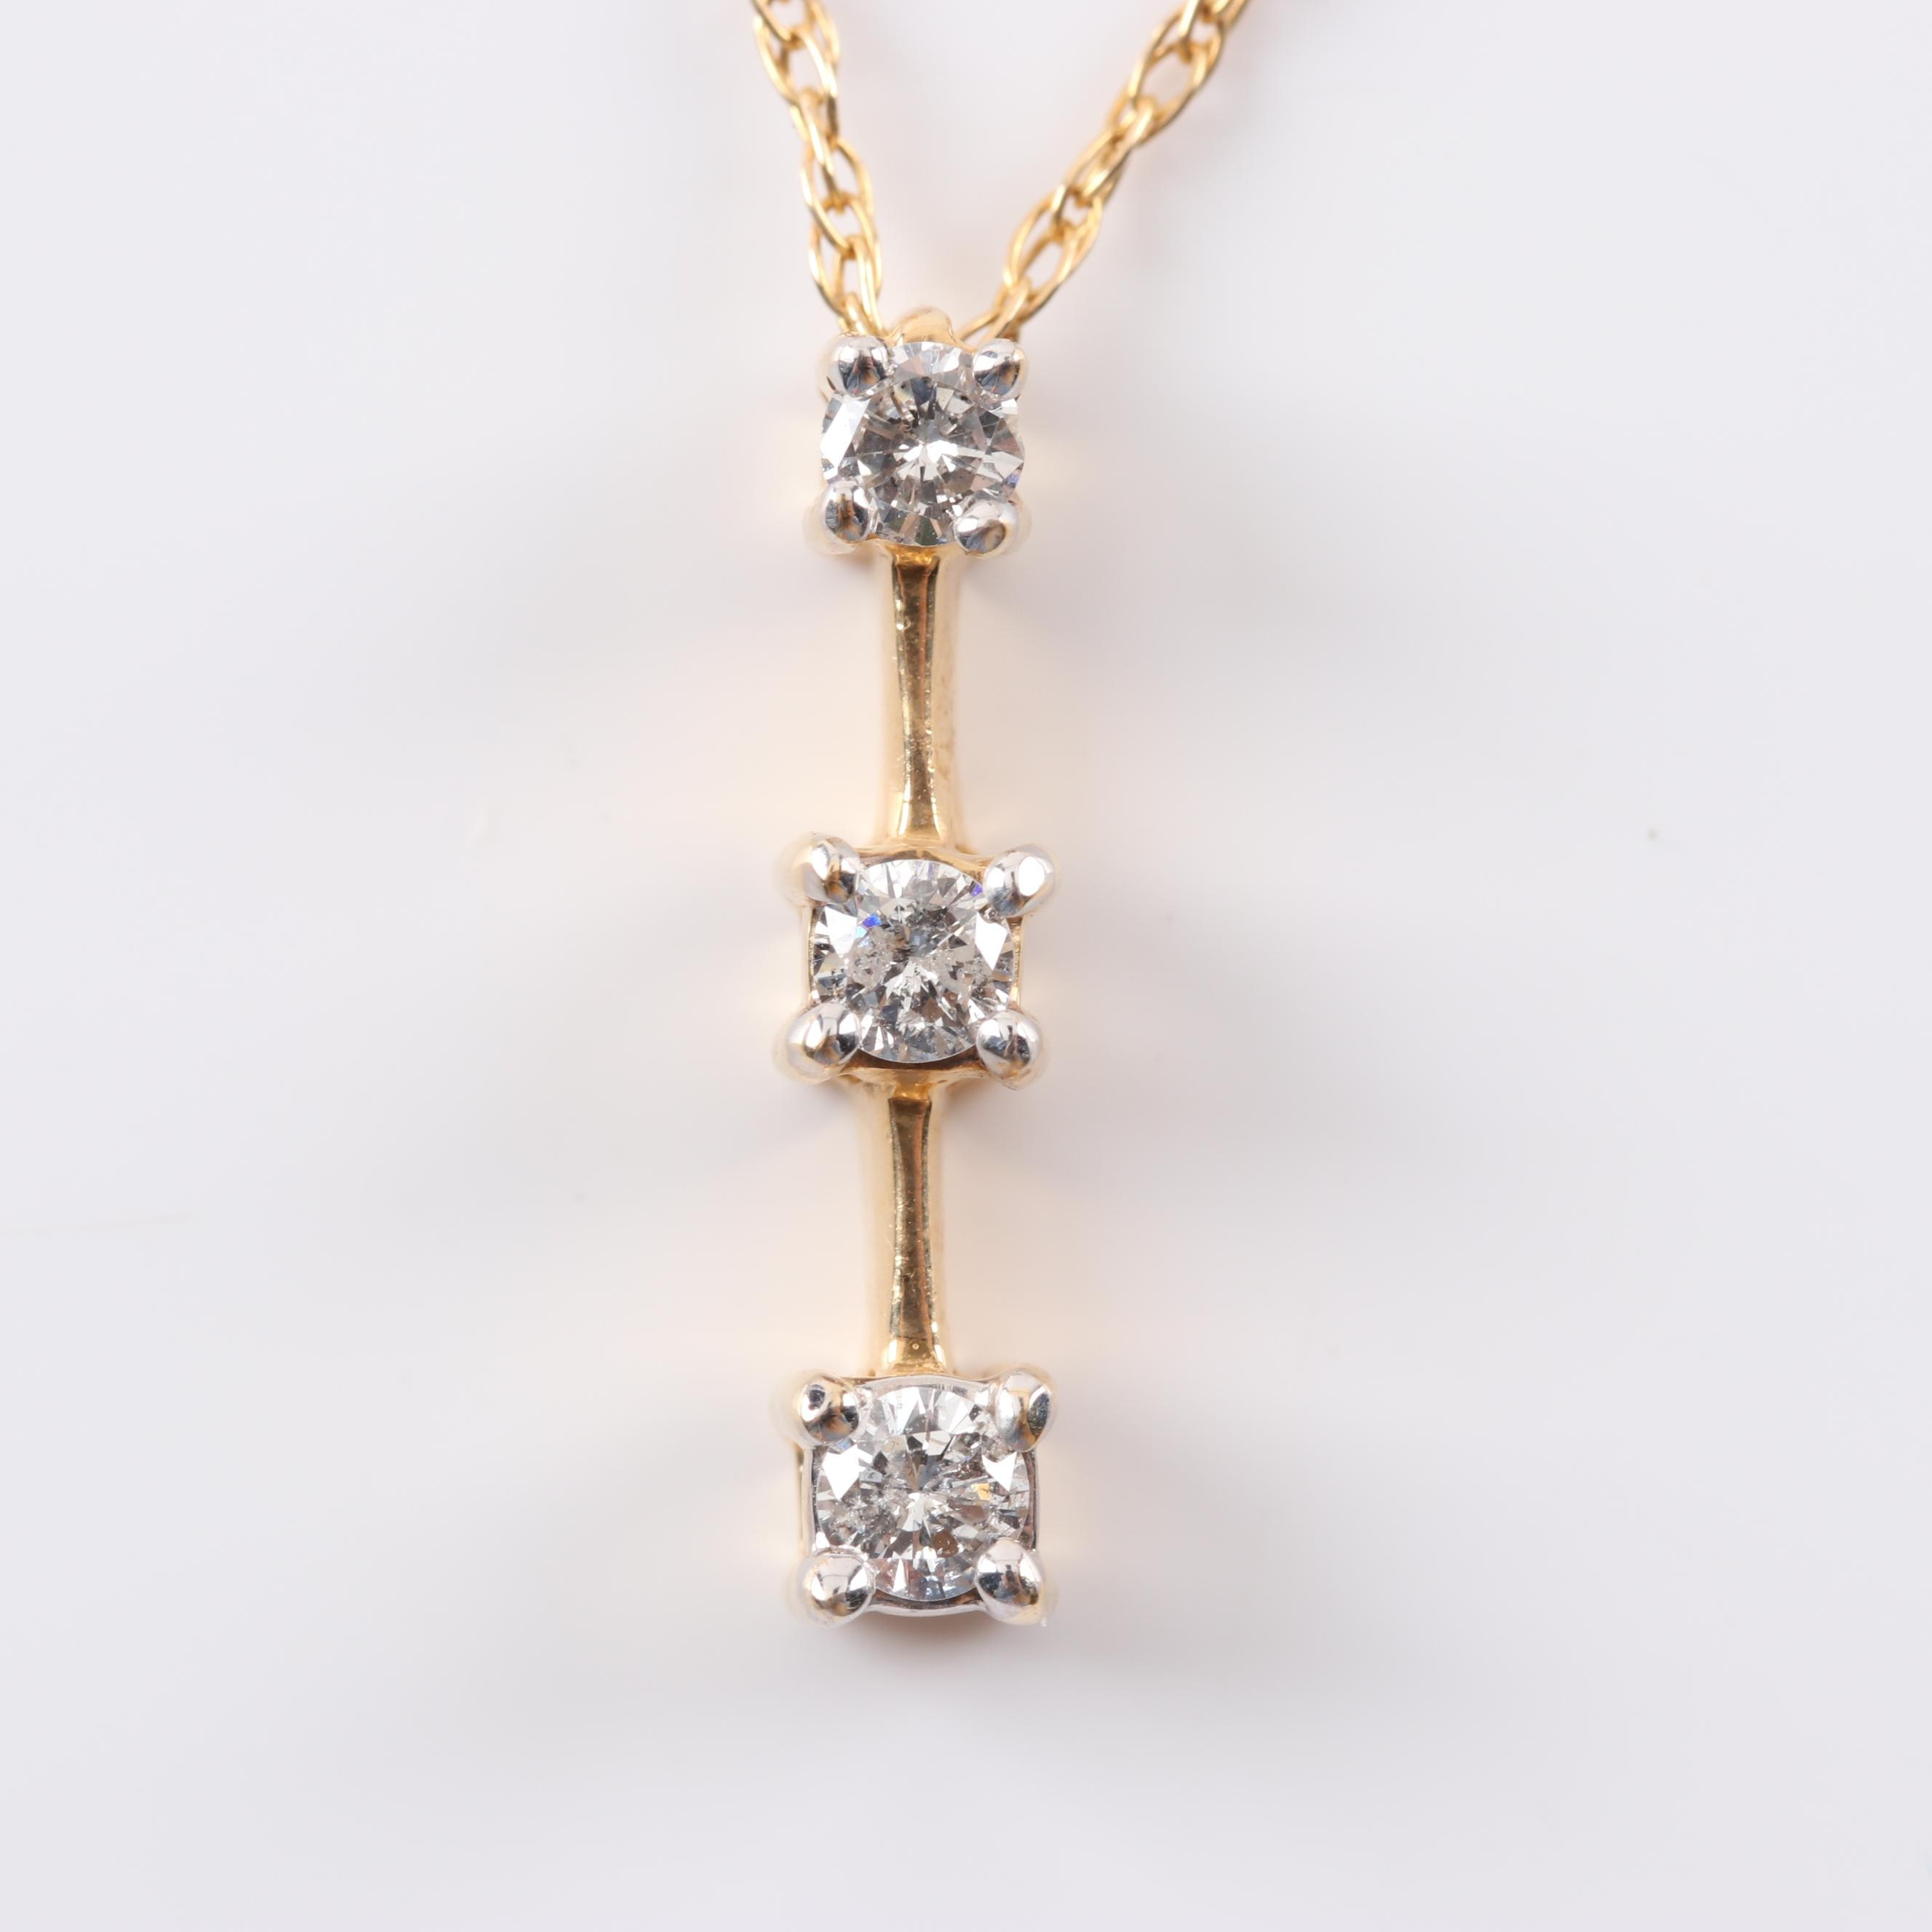 14K Yellow Gold Three-Stone Diamond Pendant Necklace